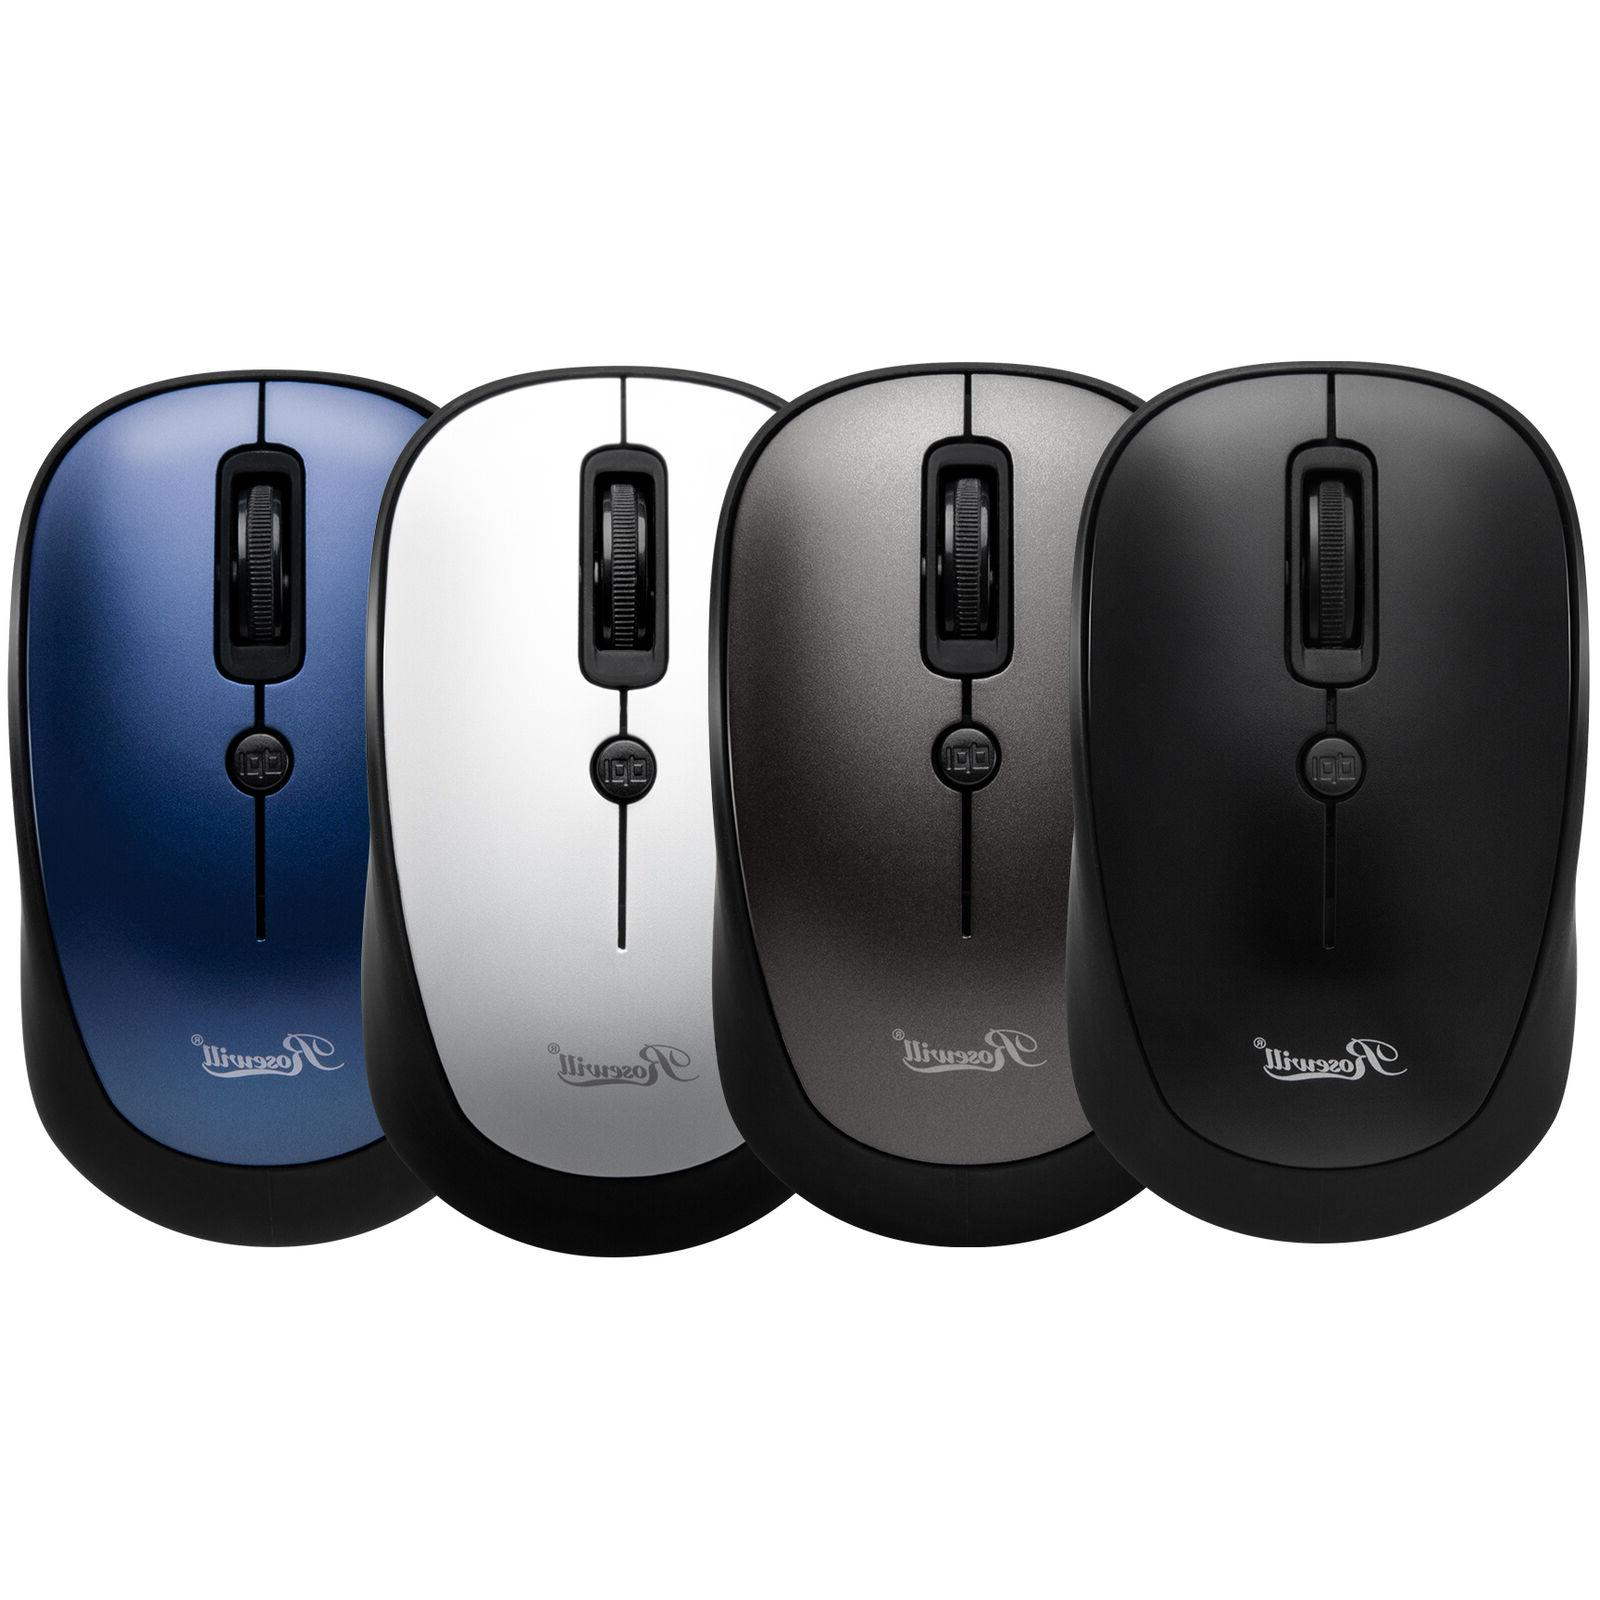 wireless mouse optical computer mouse compact size